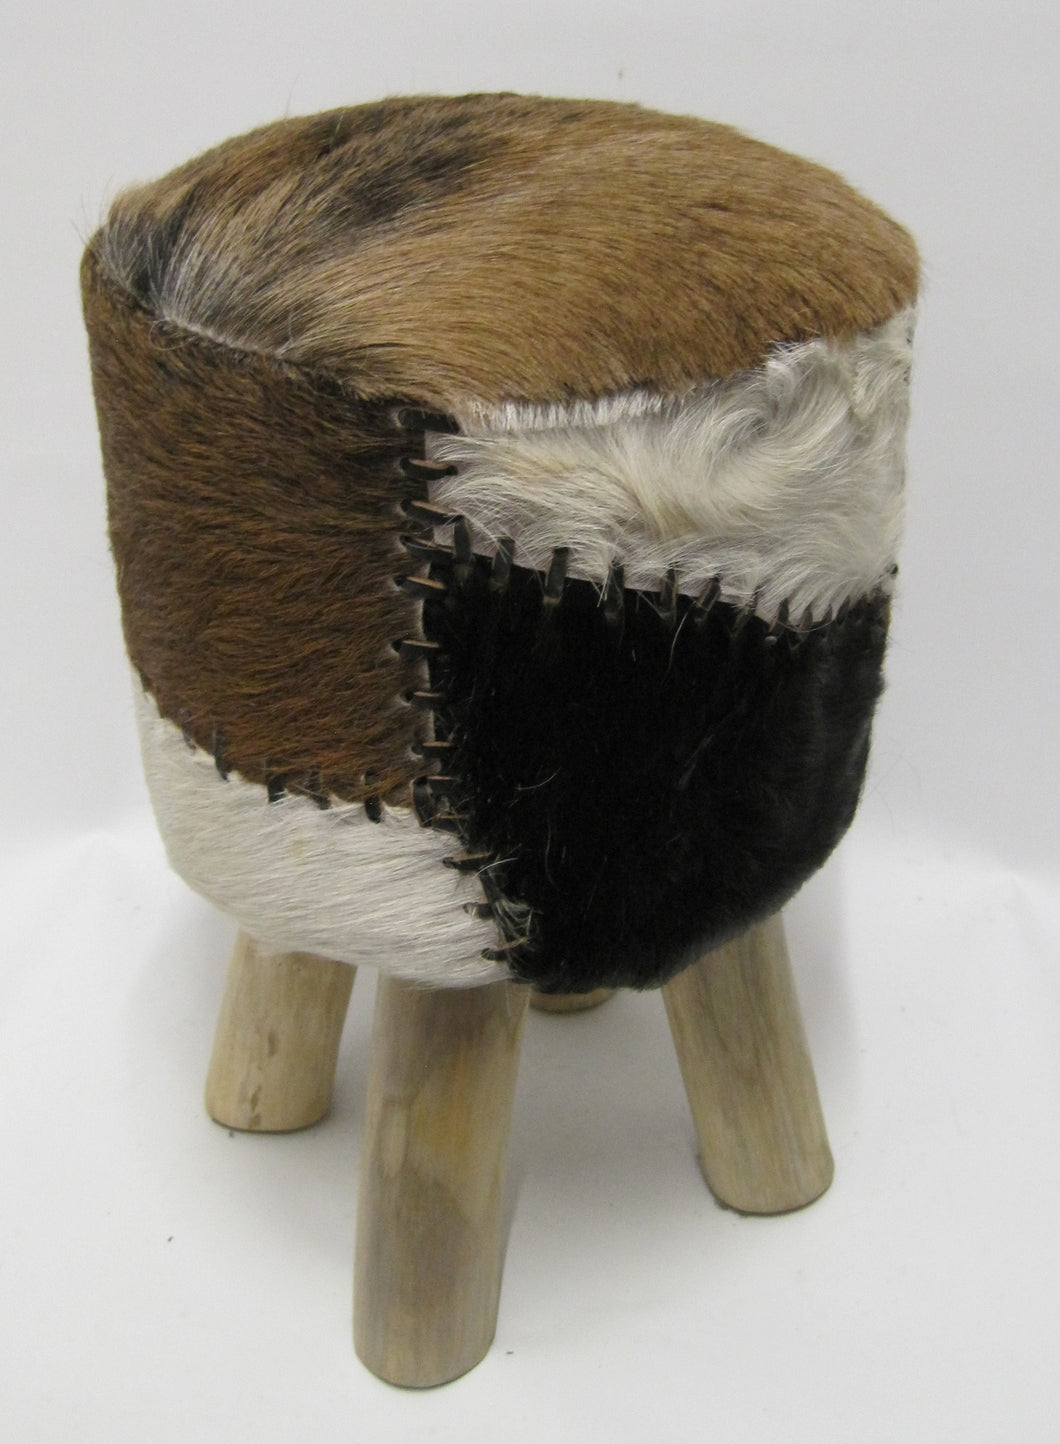 NEW!! Large Round Furry Stool